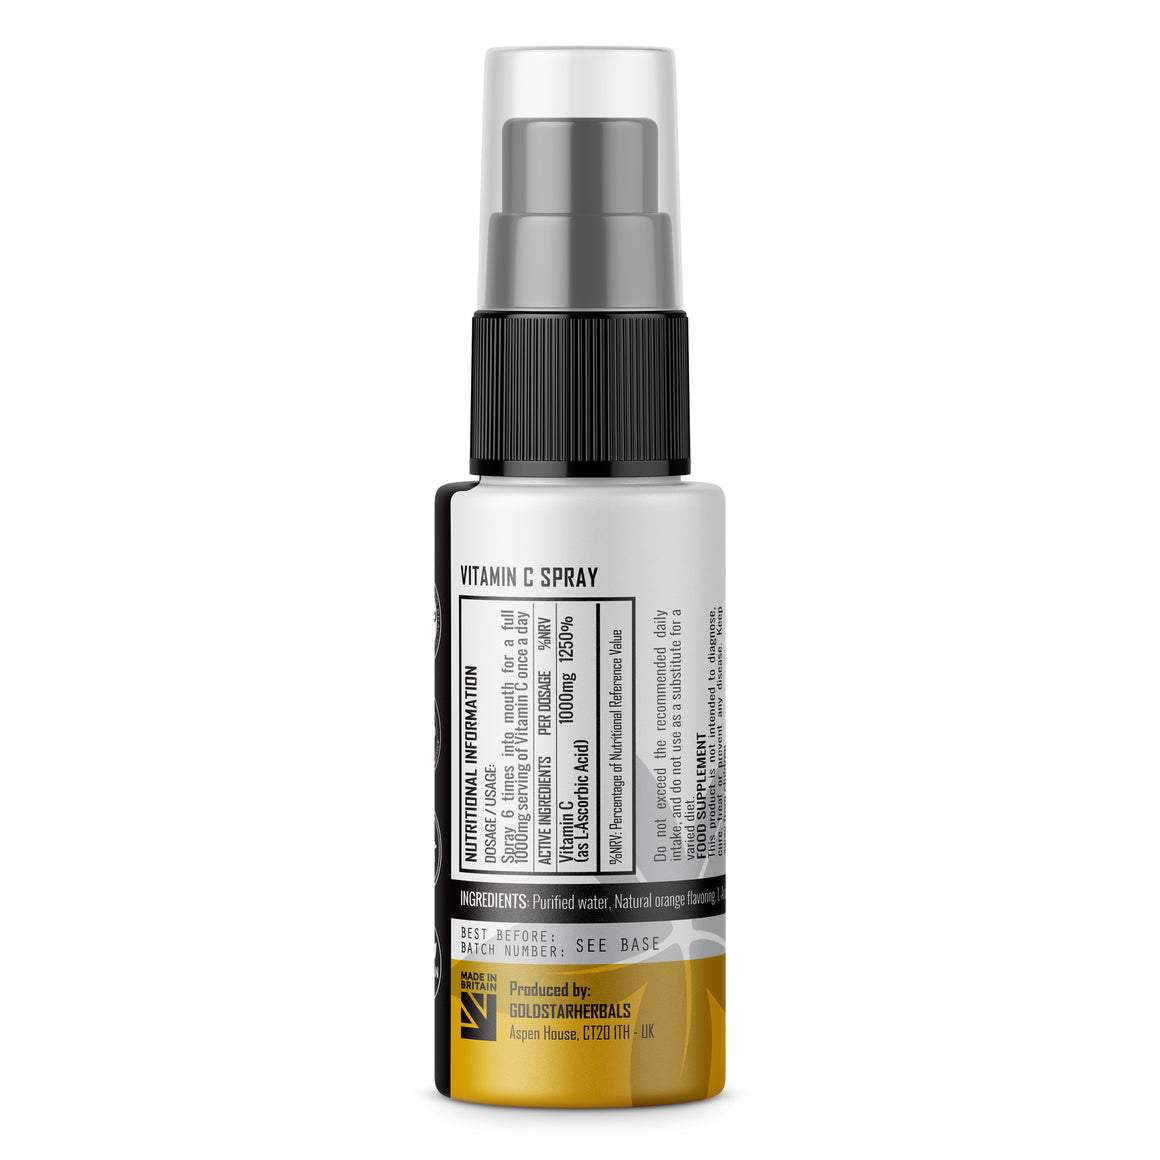 Vitamin C Spray 30ml